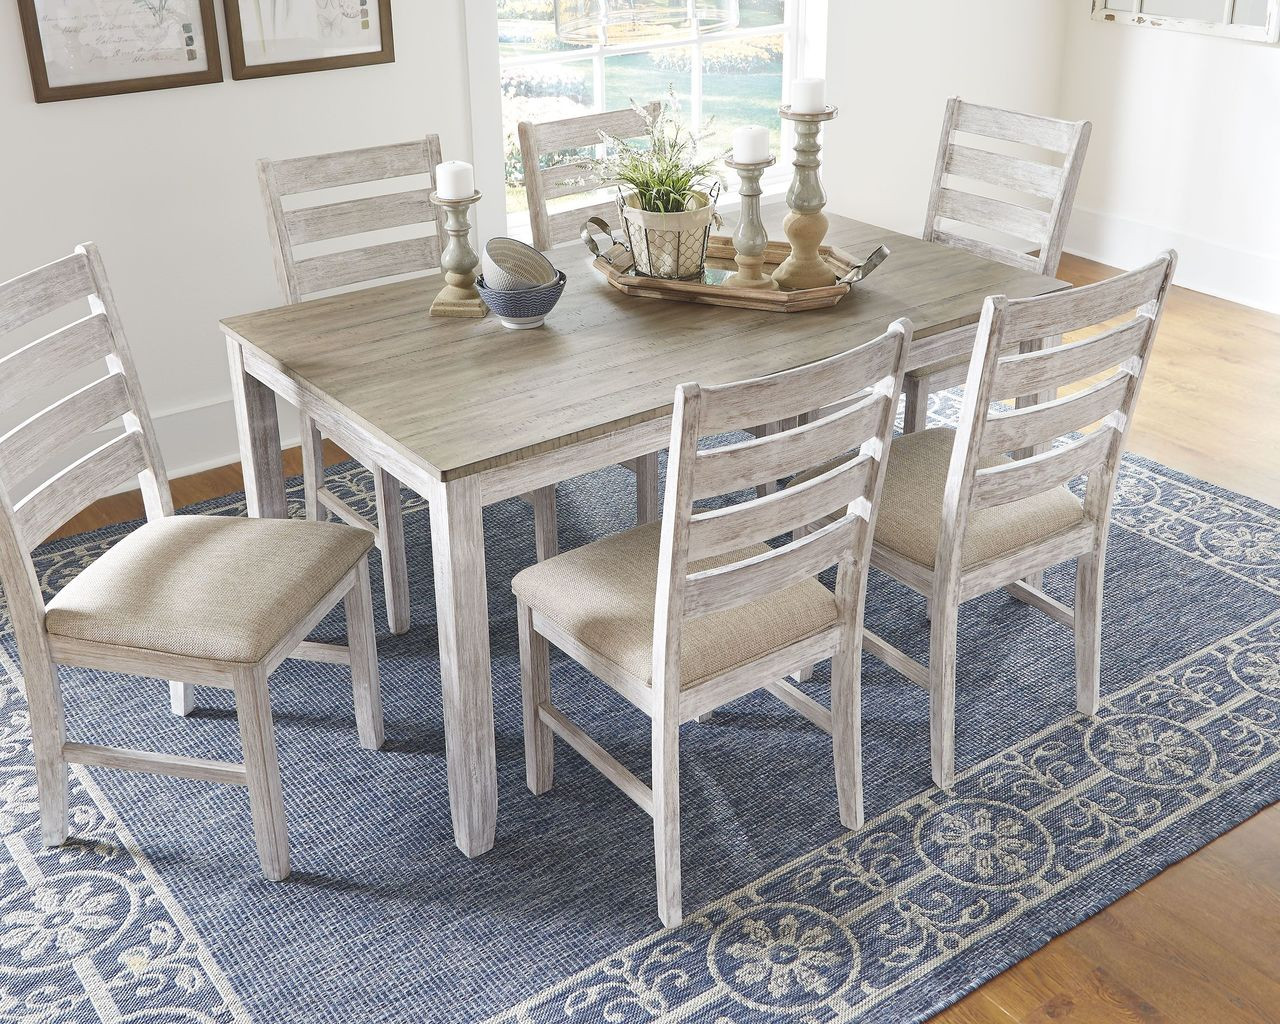 The Skempton White Light Brown Dining Room Table Set 7 Cn Available At Discount Furniture Center Serving South Hill And Farmville Va